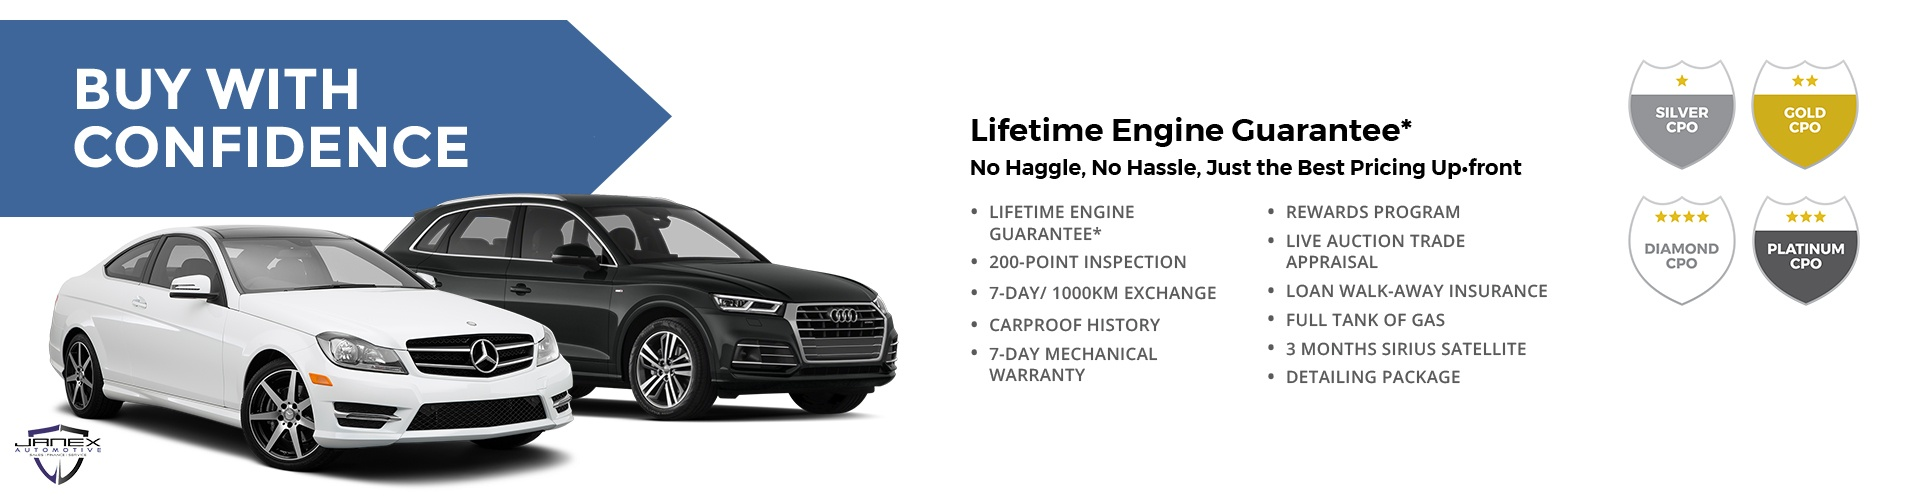 en motor front reviews canada rating plus cars hatchback audi angular premium trend used and